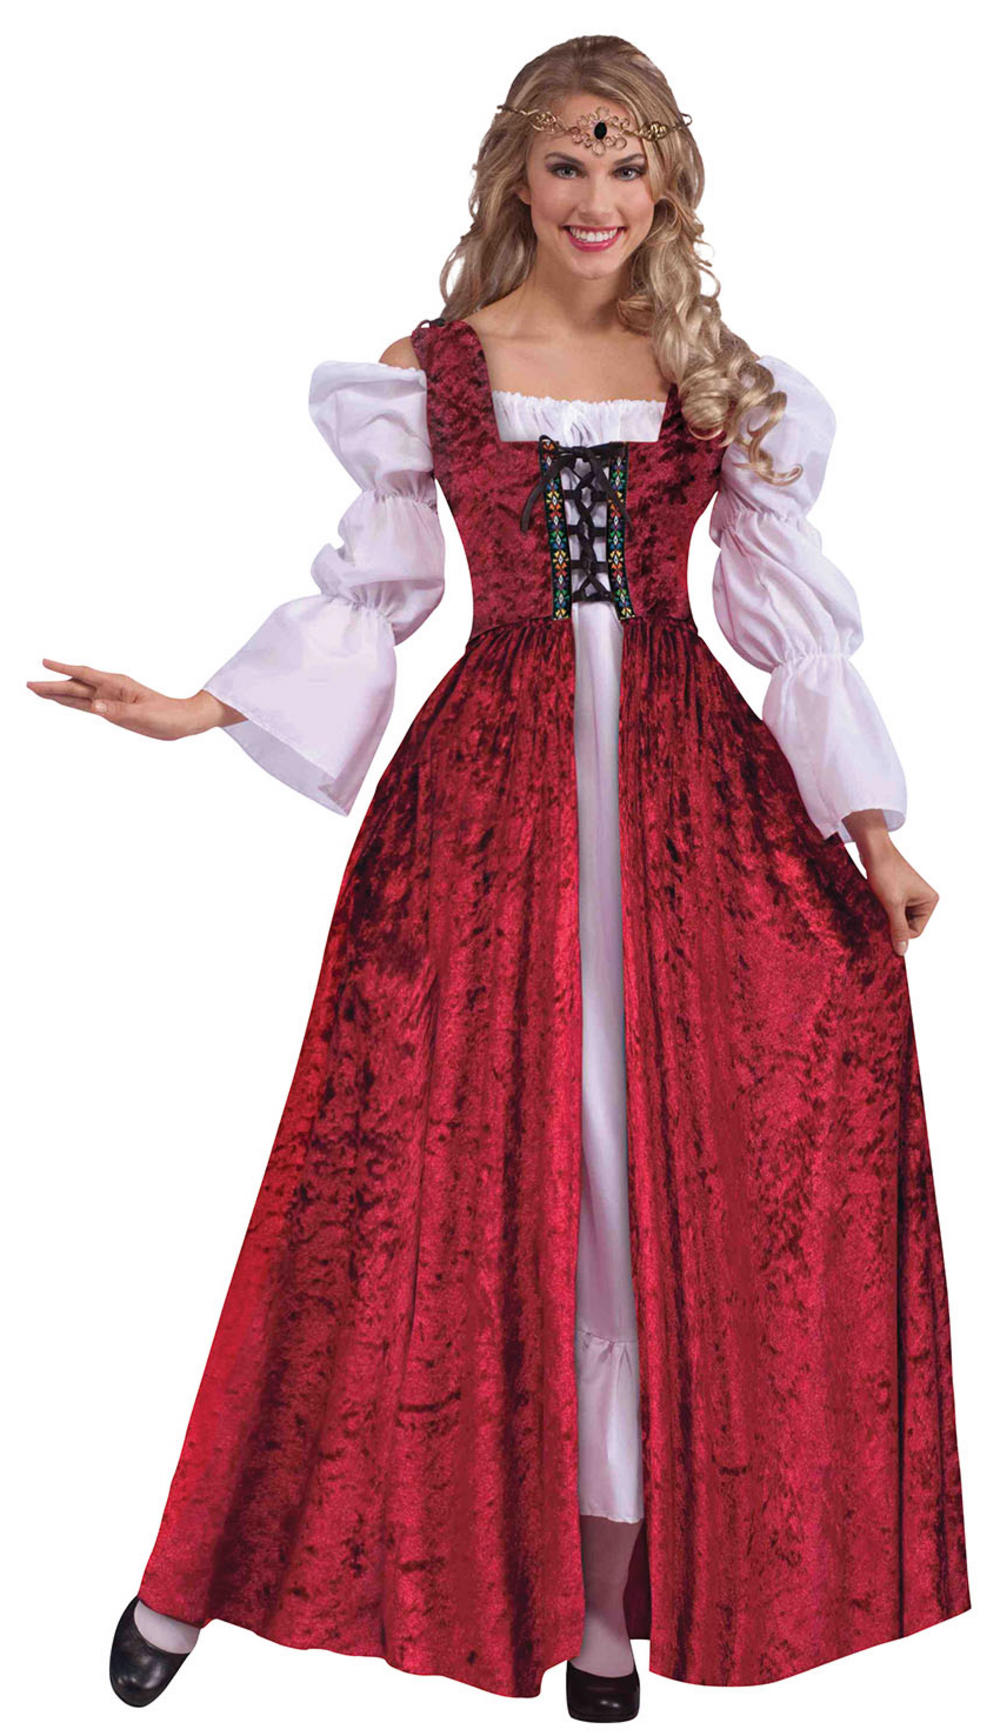 Ladies Medieval Lace Up Gown Costume